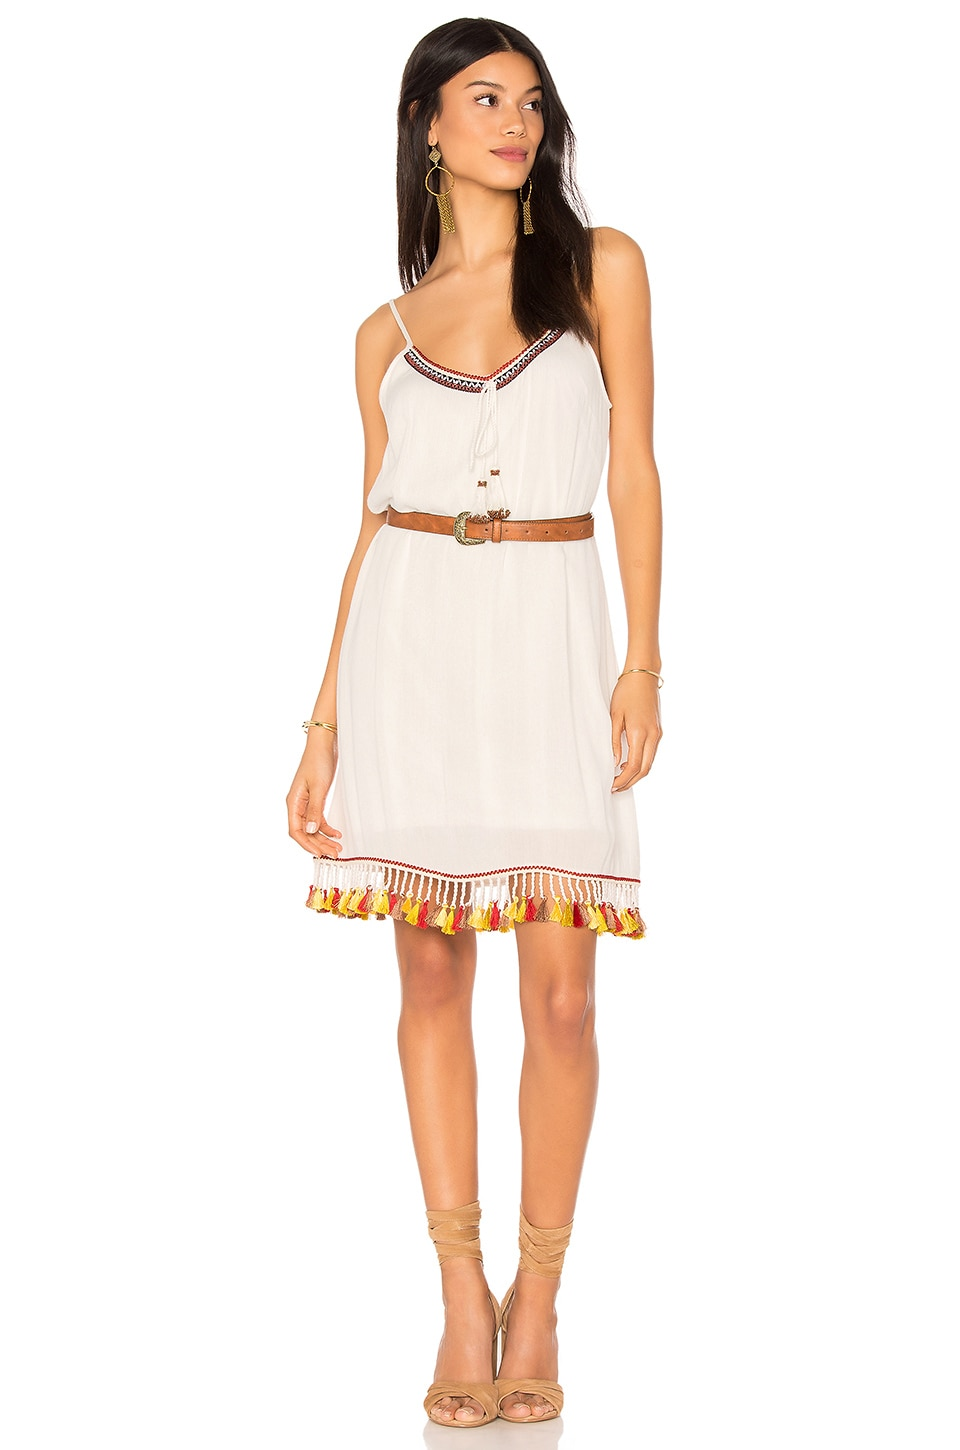 Band of Gypsies Tassel Trim Belted Shift Dress in Ivory & Rust